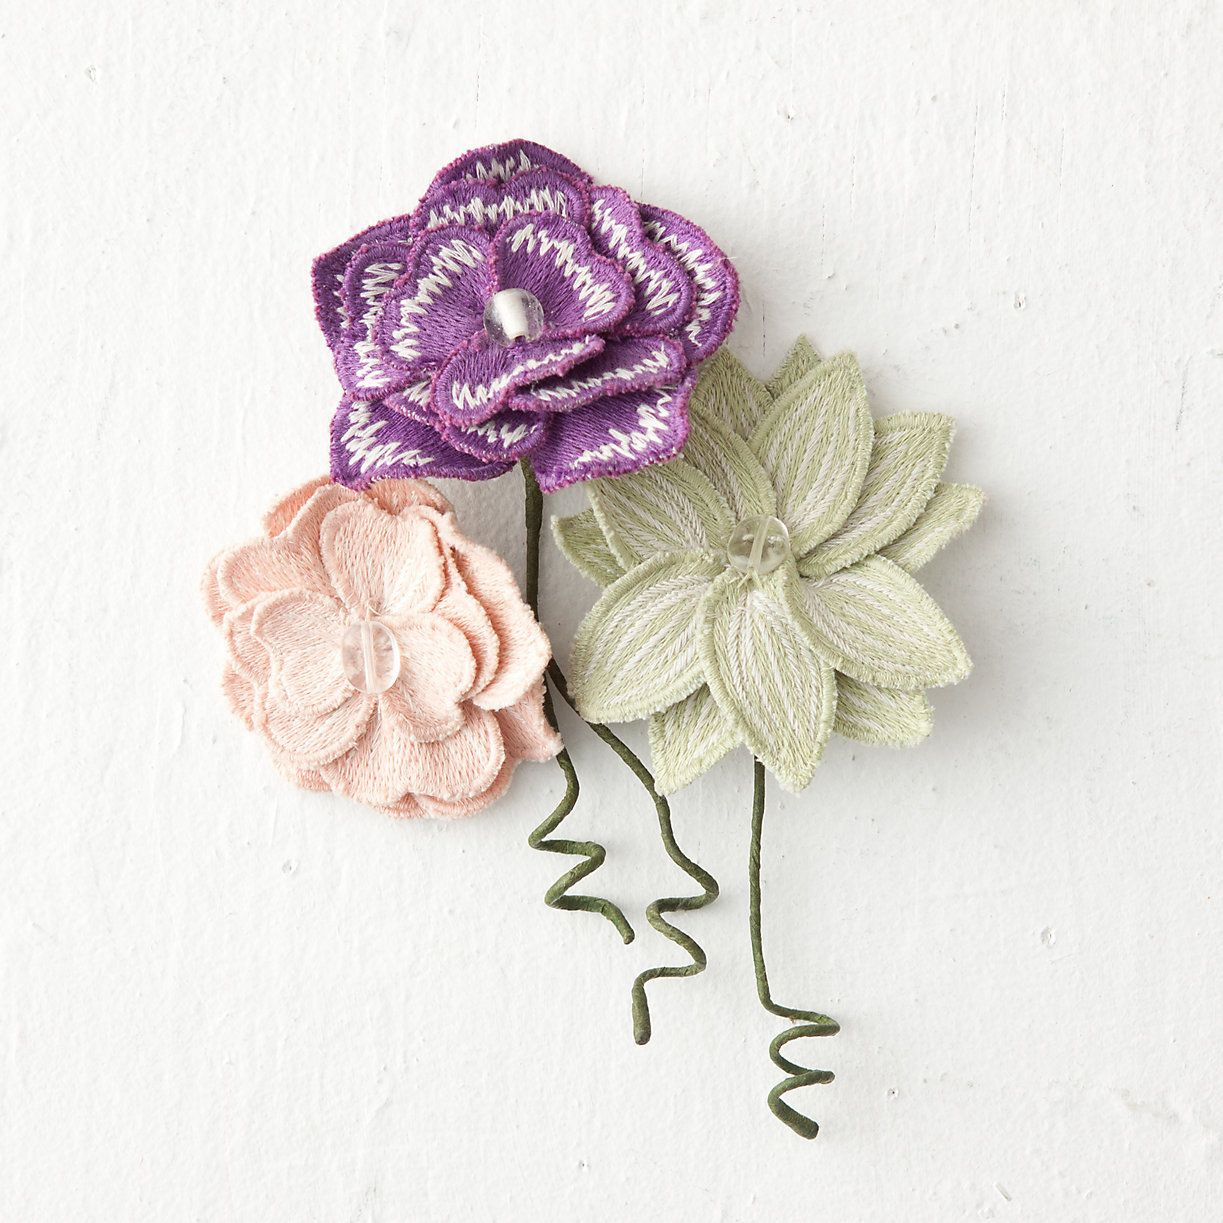 Embroidered Flower Gift Toppers in Sale SHOP New to Sale at Terrain